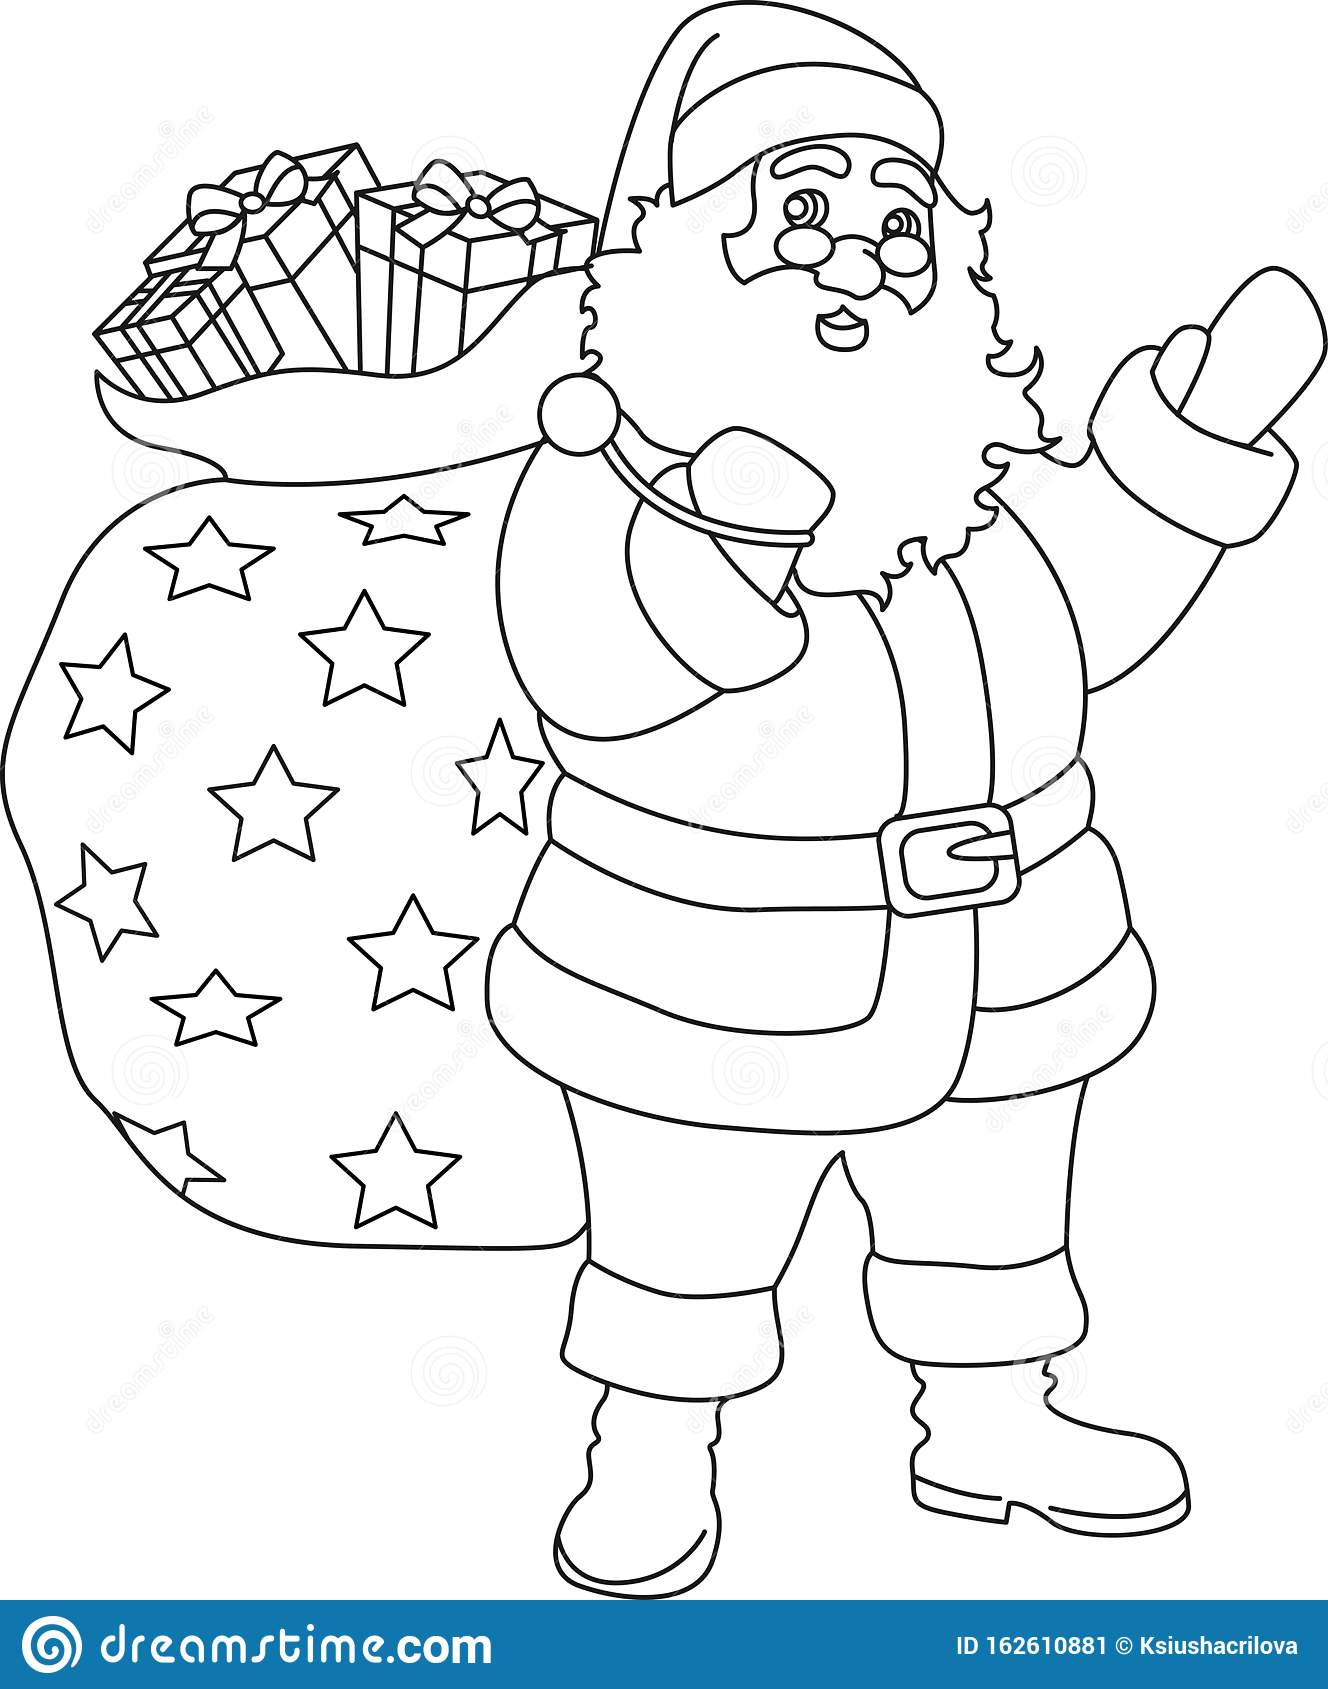 Coloring Book Coloring Pages Christmas Illustration In Outlines Vector Illustration Ready Postcard Santa Stock Vector Illustration Of Gift Cute 162610881